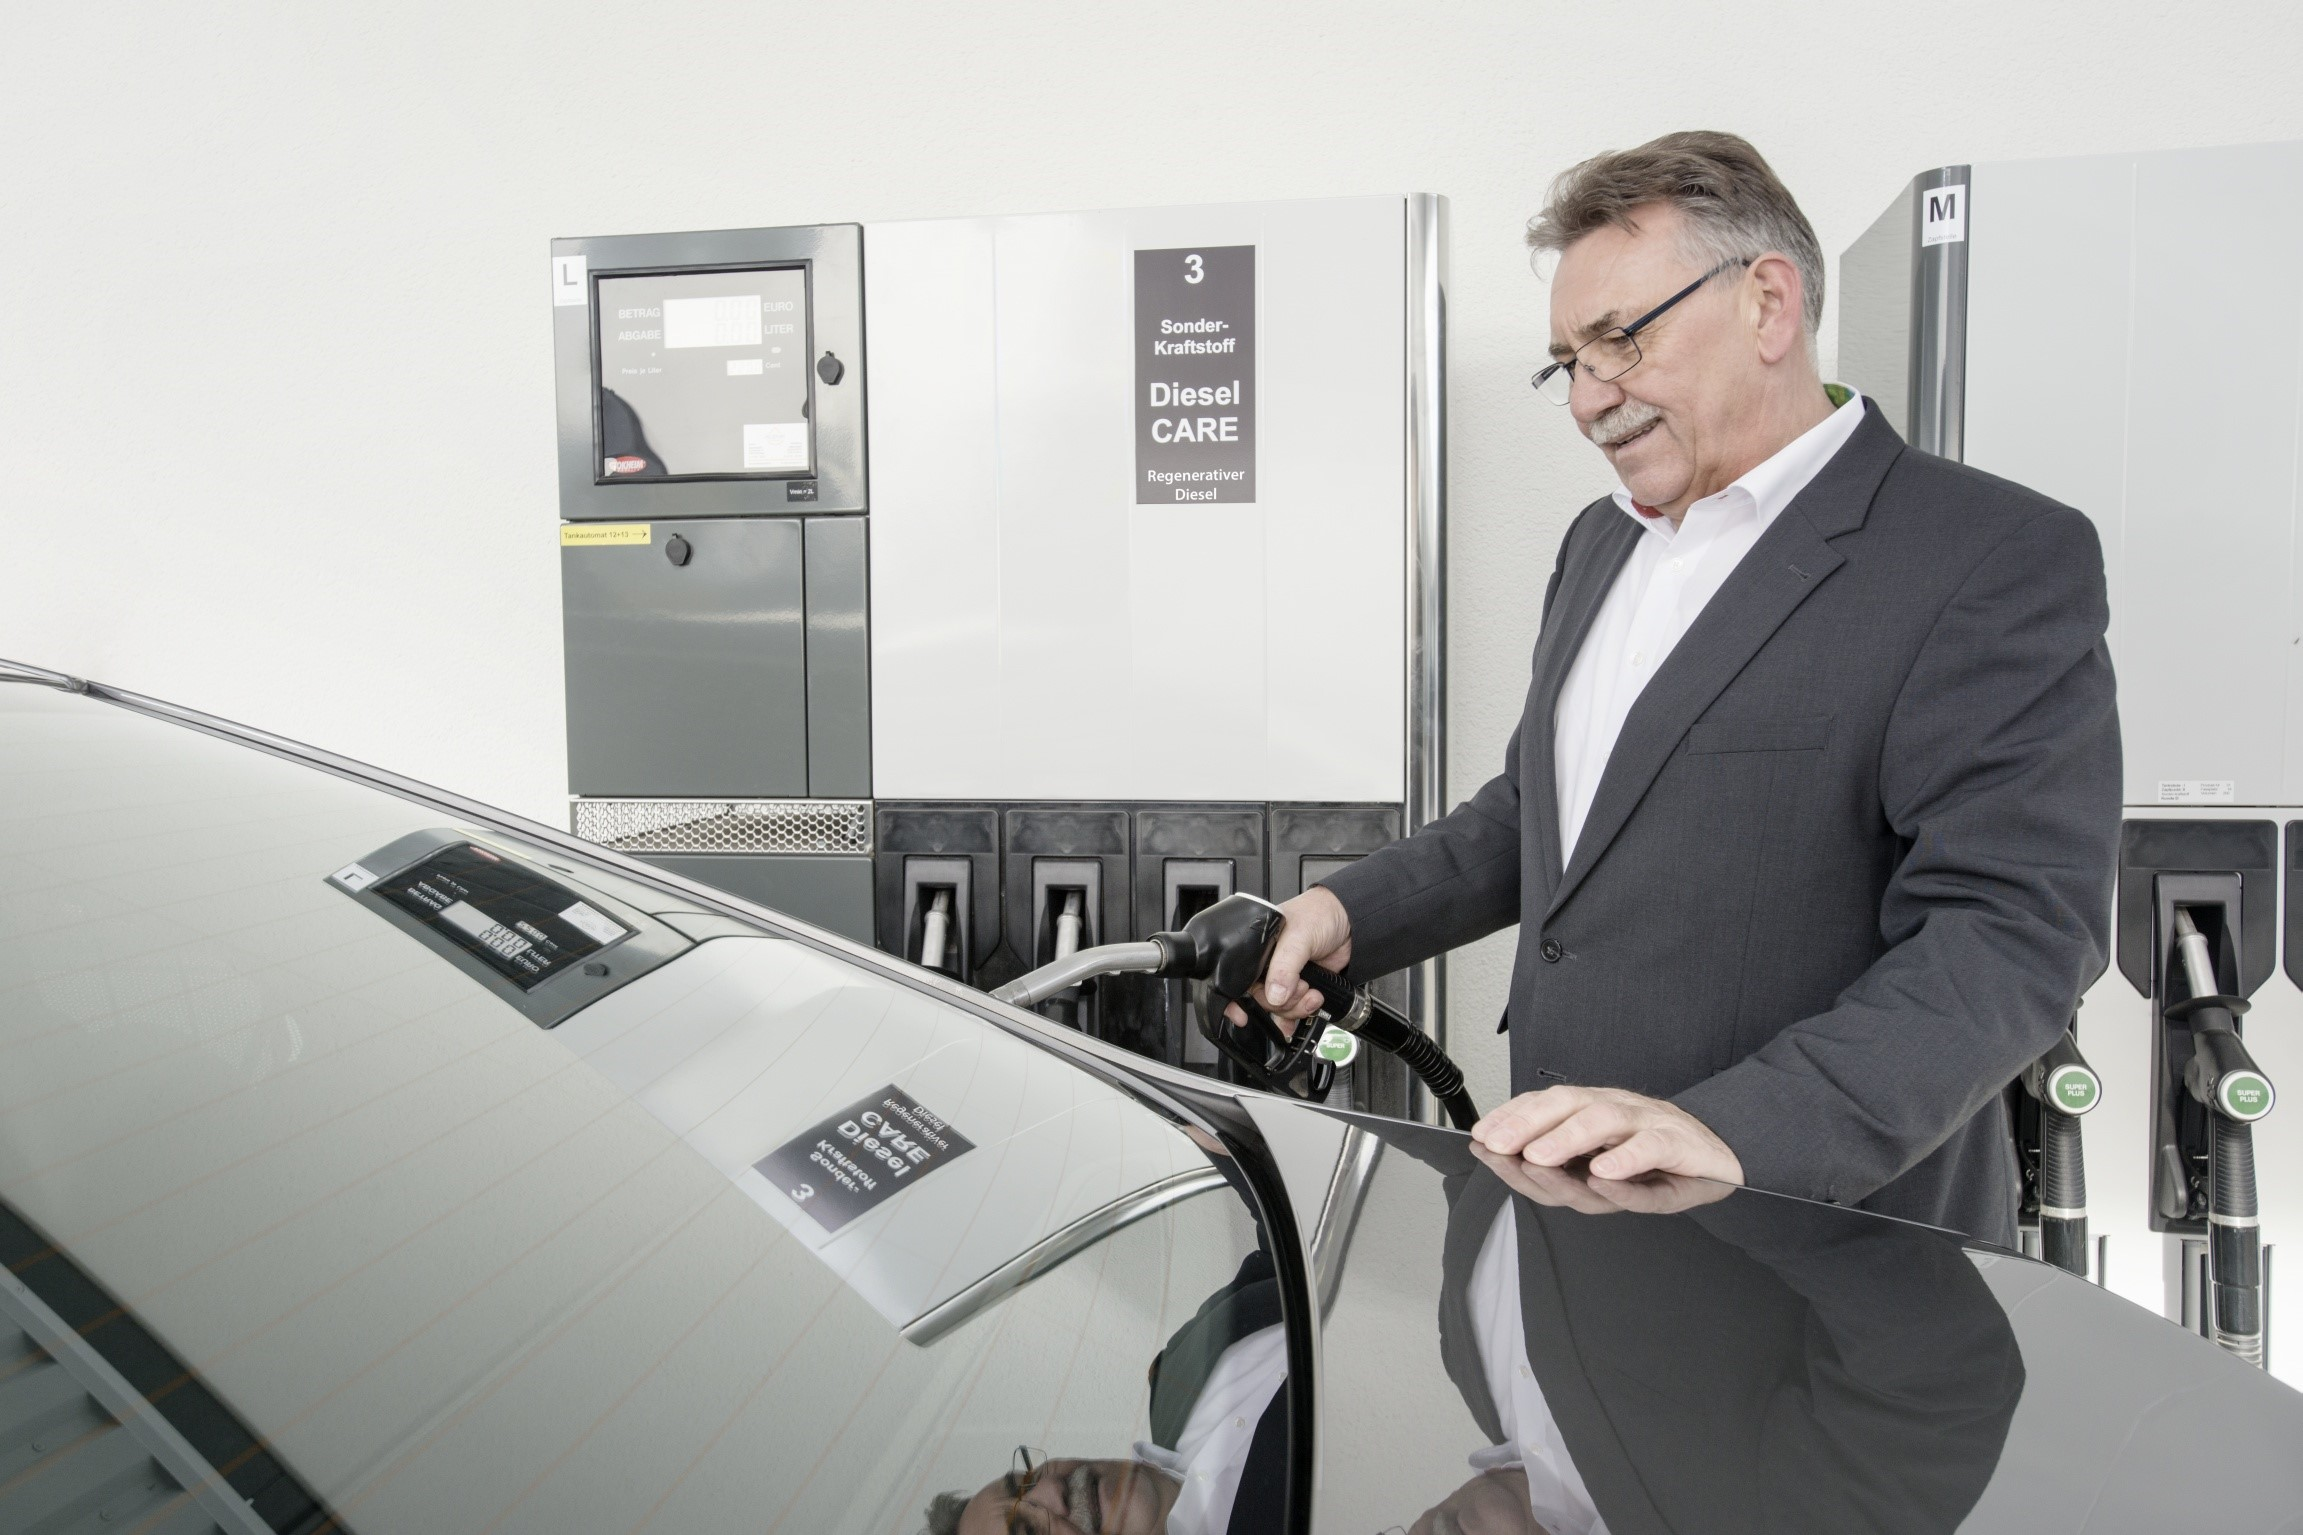 Bosch trialing fully renewable diesel fuel